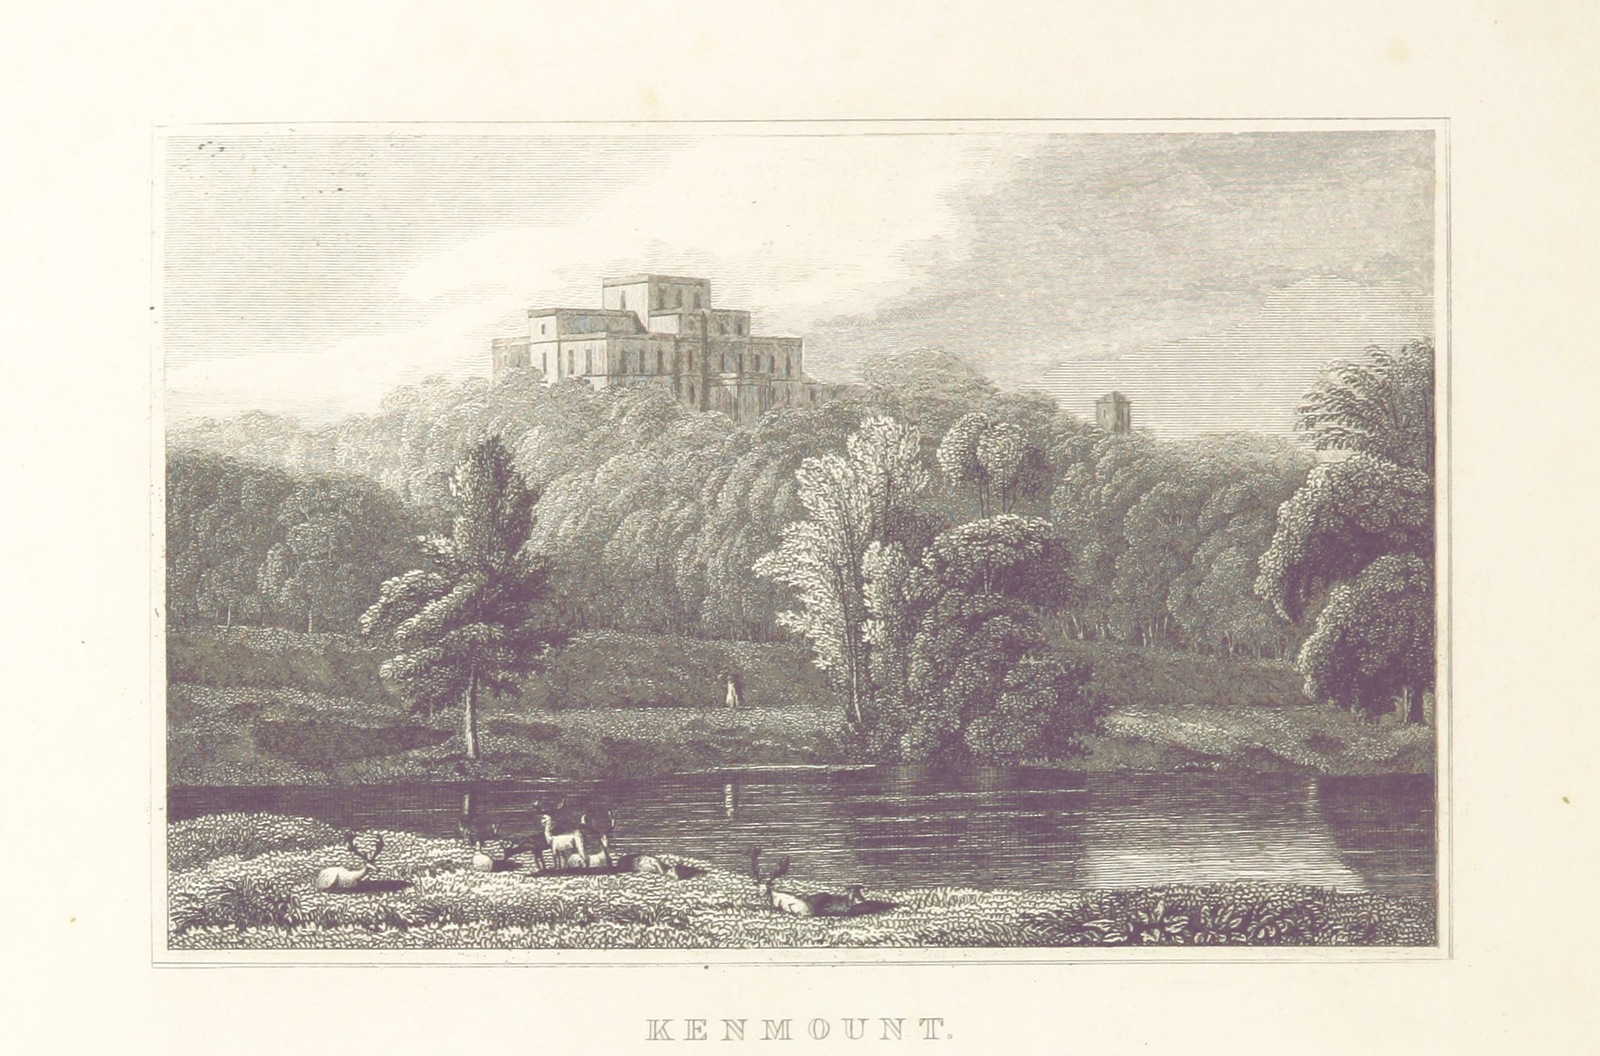 """Kenmount from """"Modern Athens, displayed in a series of views; or, Edinburgh in the nineteenth century; exhibiting the whole of the new buildings, modern improvements, antiquities, & picturesque scenery of the Scottish metropolis & its environs, from original drawings by Mr. T. H. Shepherd. With historical, topographical & critical illustrations [by John Britton]"""""""